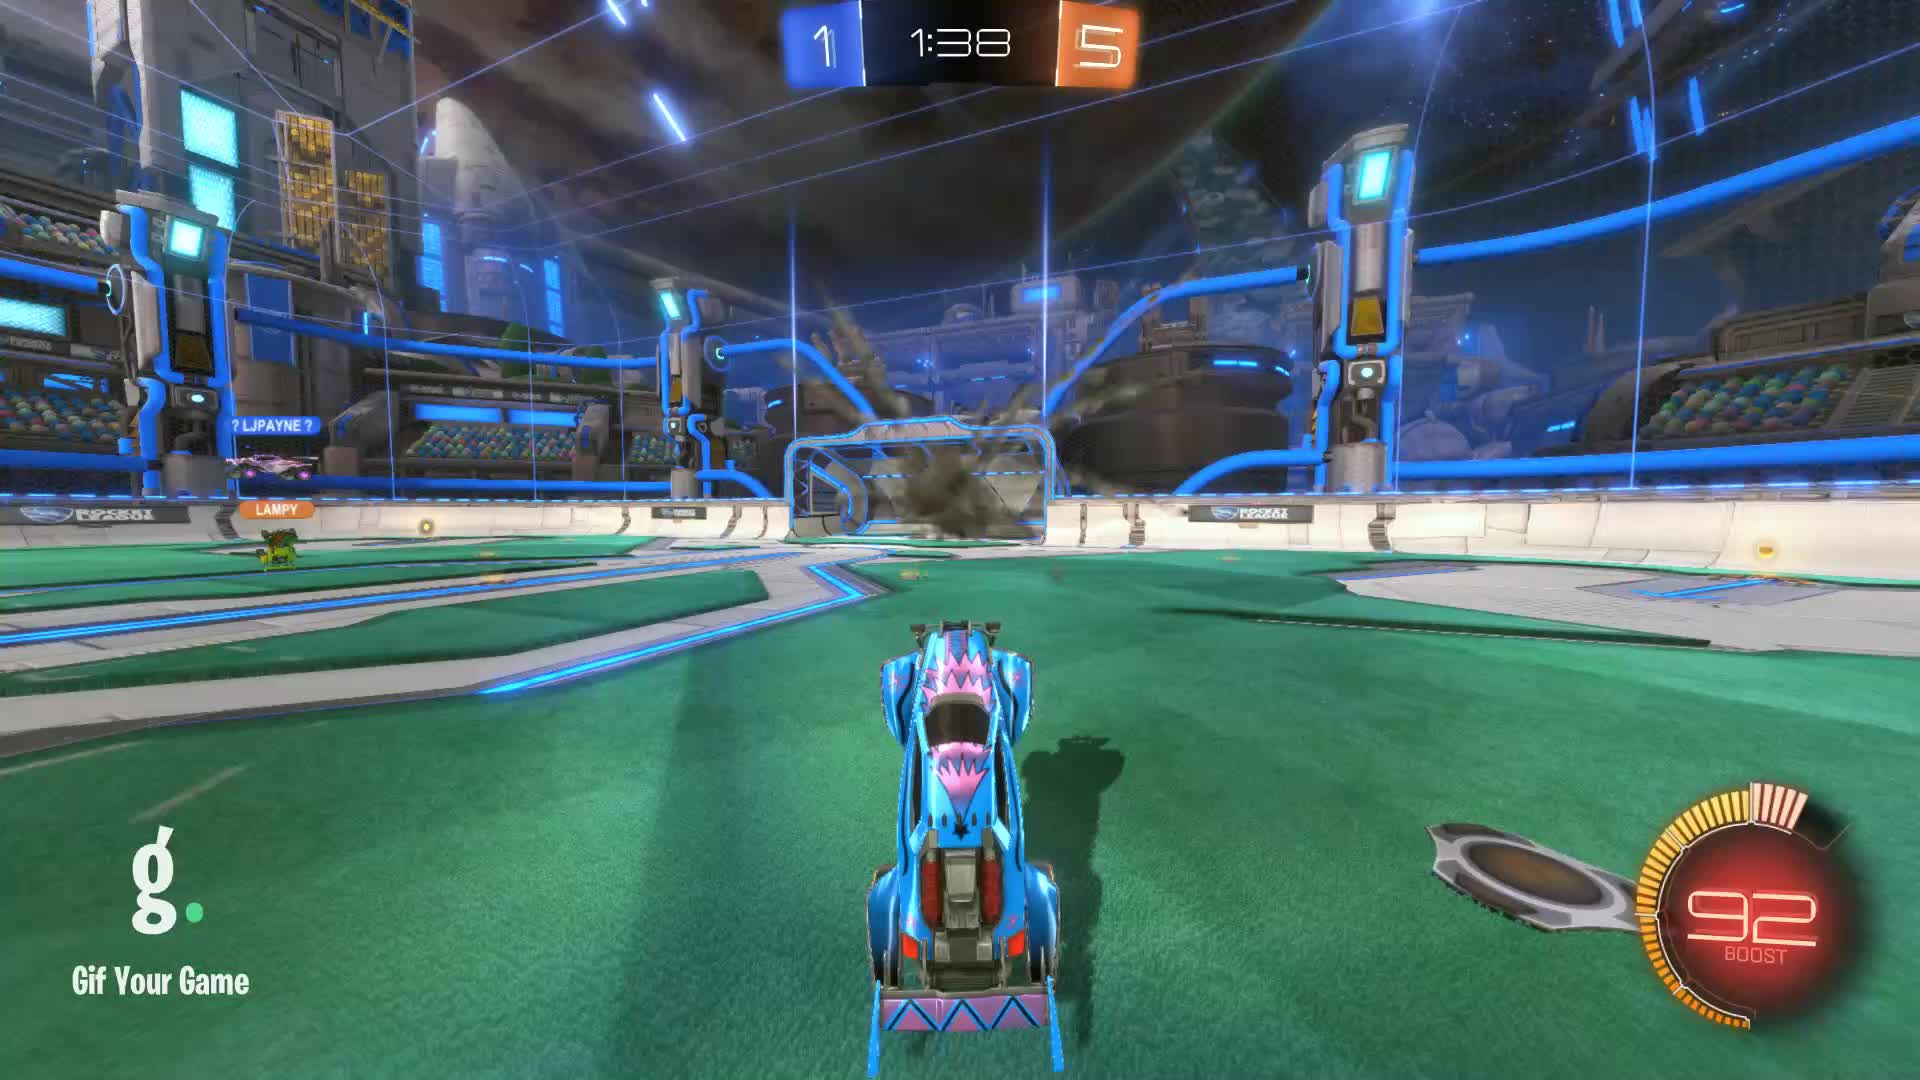 Gif Your Game, GifYourGame, Panthers   BroKroki, Rocket League, RocketLeague, Panthers   BroKroki Clip 1 GIFs